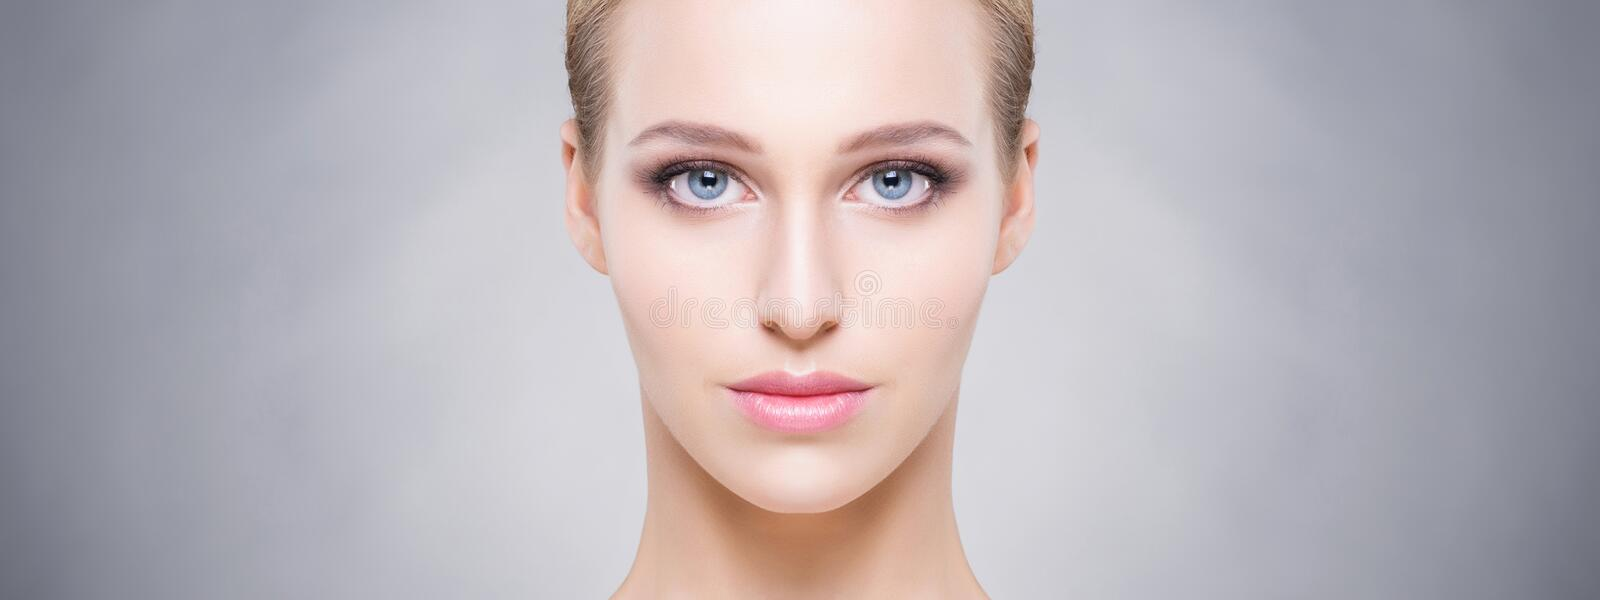 Beautiful and young woman over the grey background. Healthy skin royalty free stock image